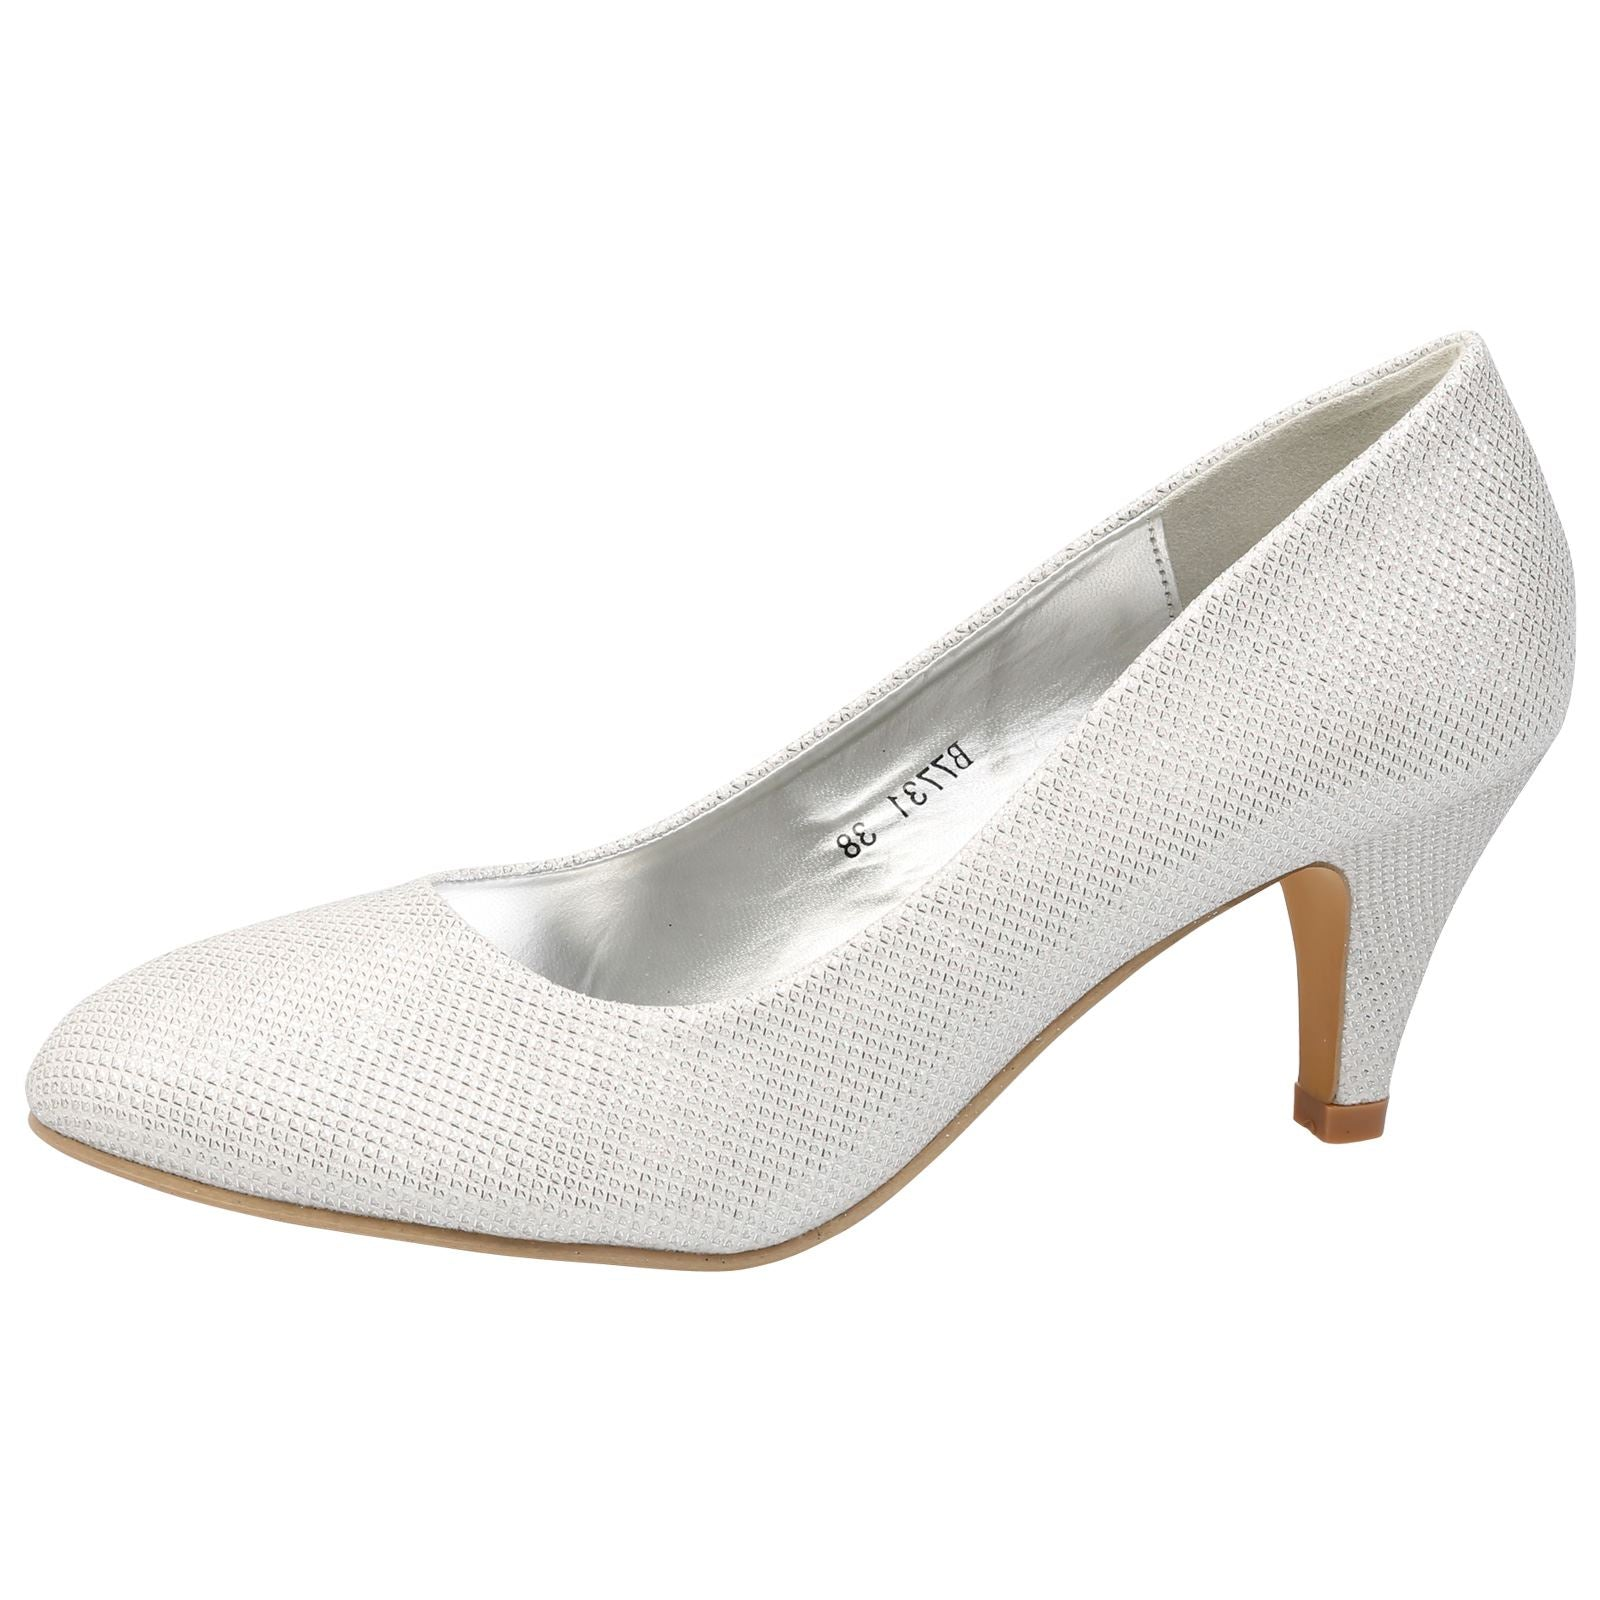 Leona Mid Heel Court Shoes in White Shimmer